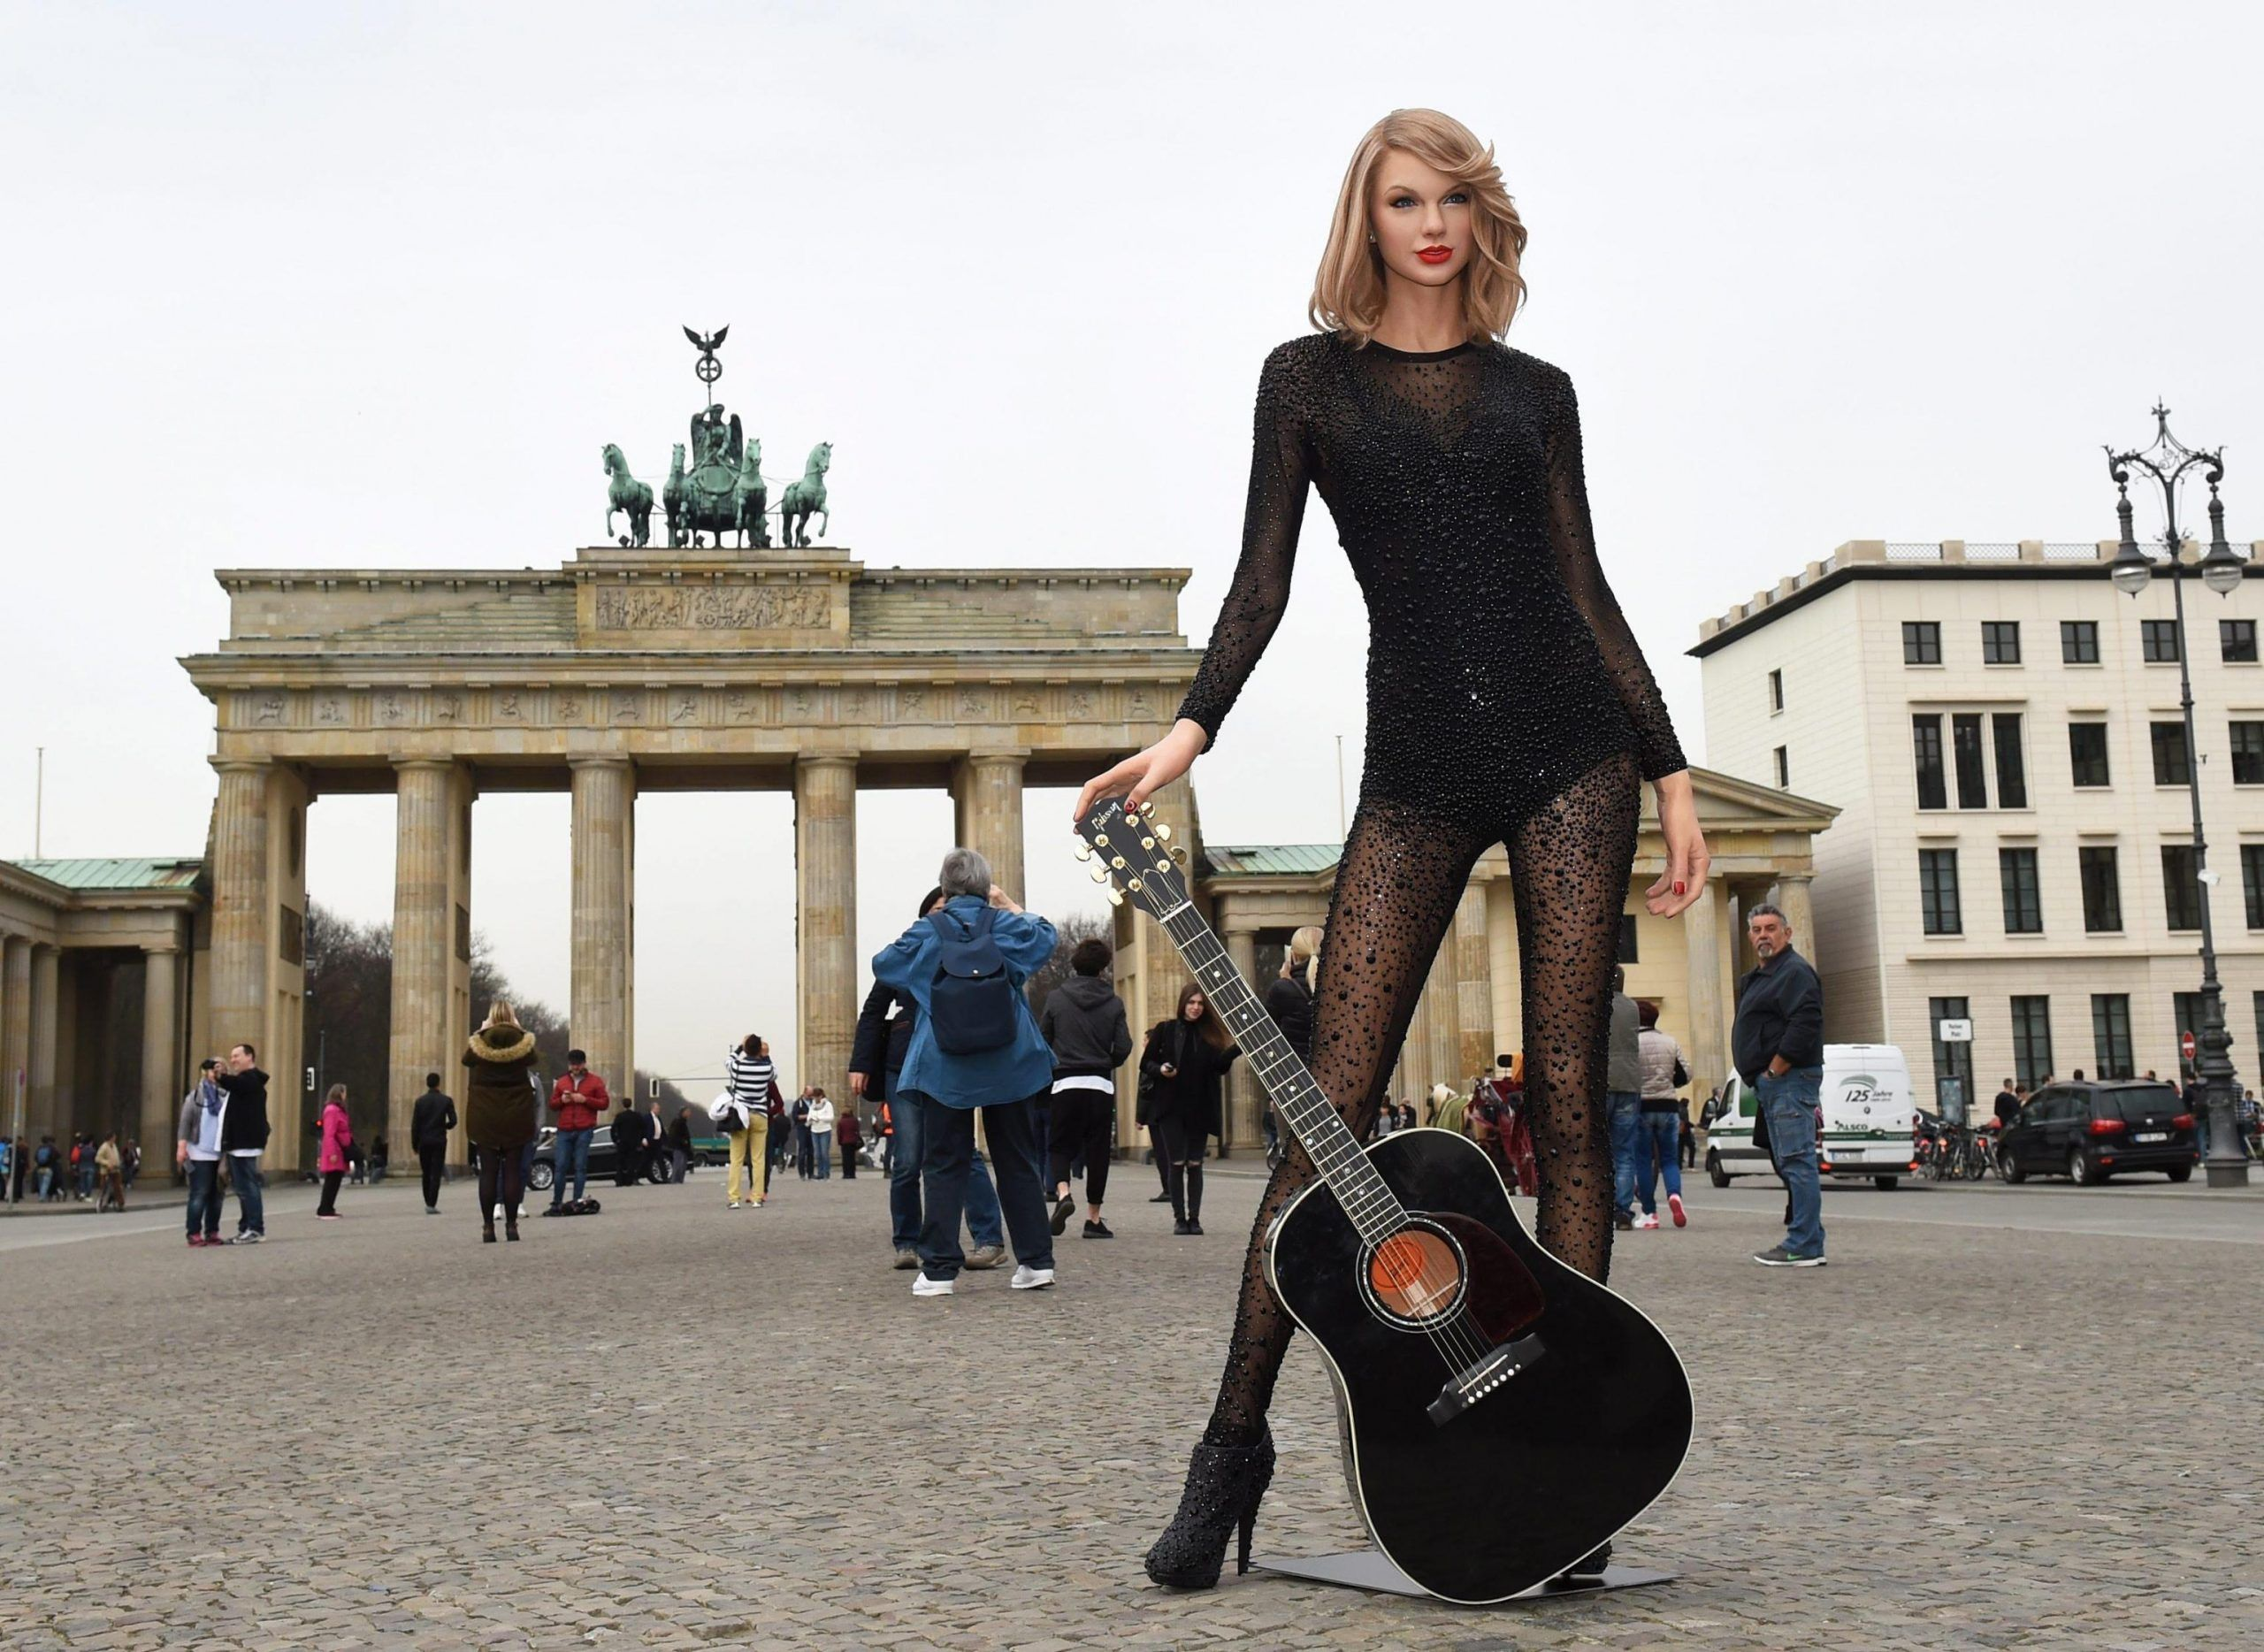 Taylor Swift wax figure in front of Brandenburger Tor in Berlin